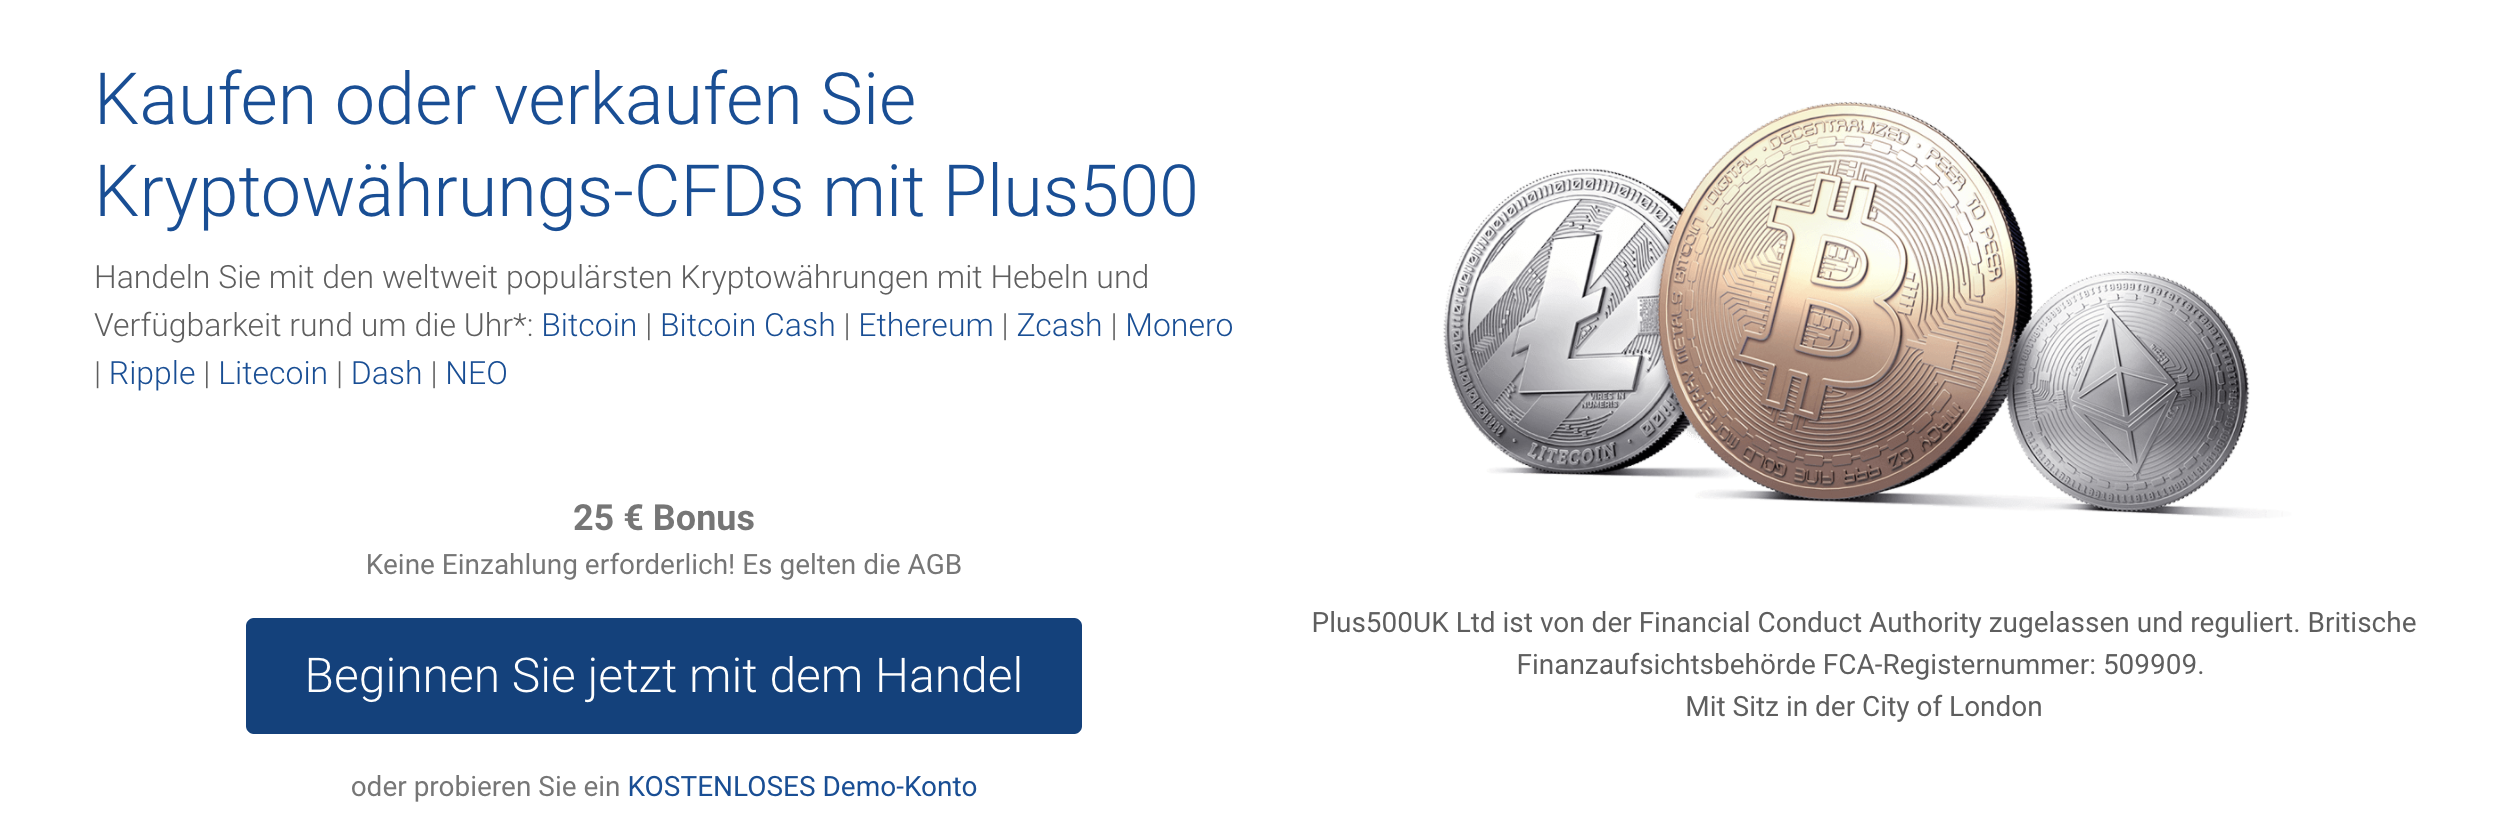 Plus500 Krypto Handel